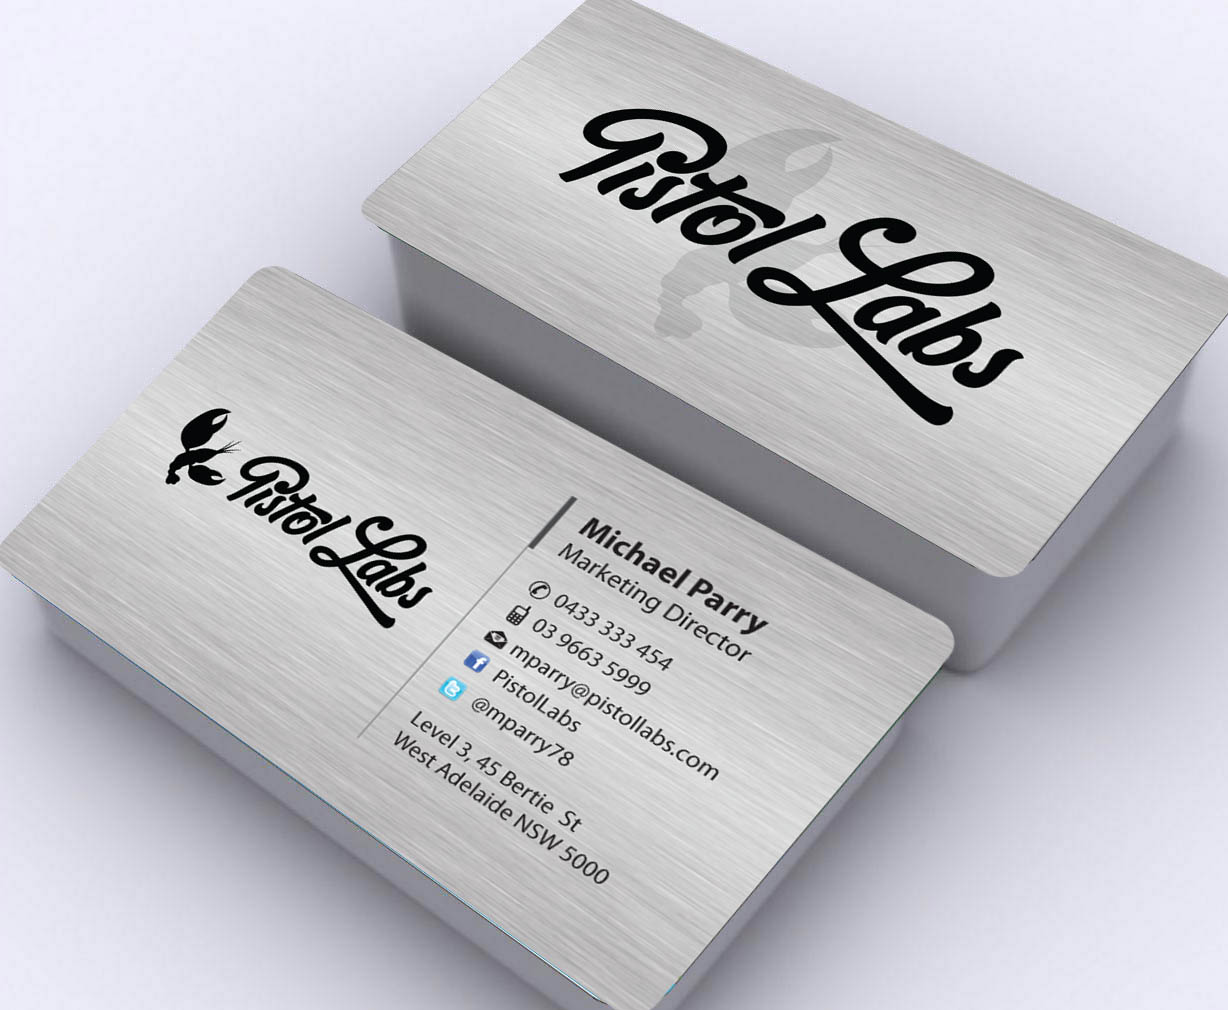 digital business card design for a company by sbss design 2367883